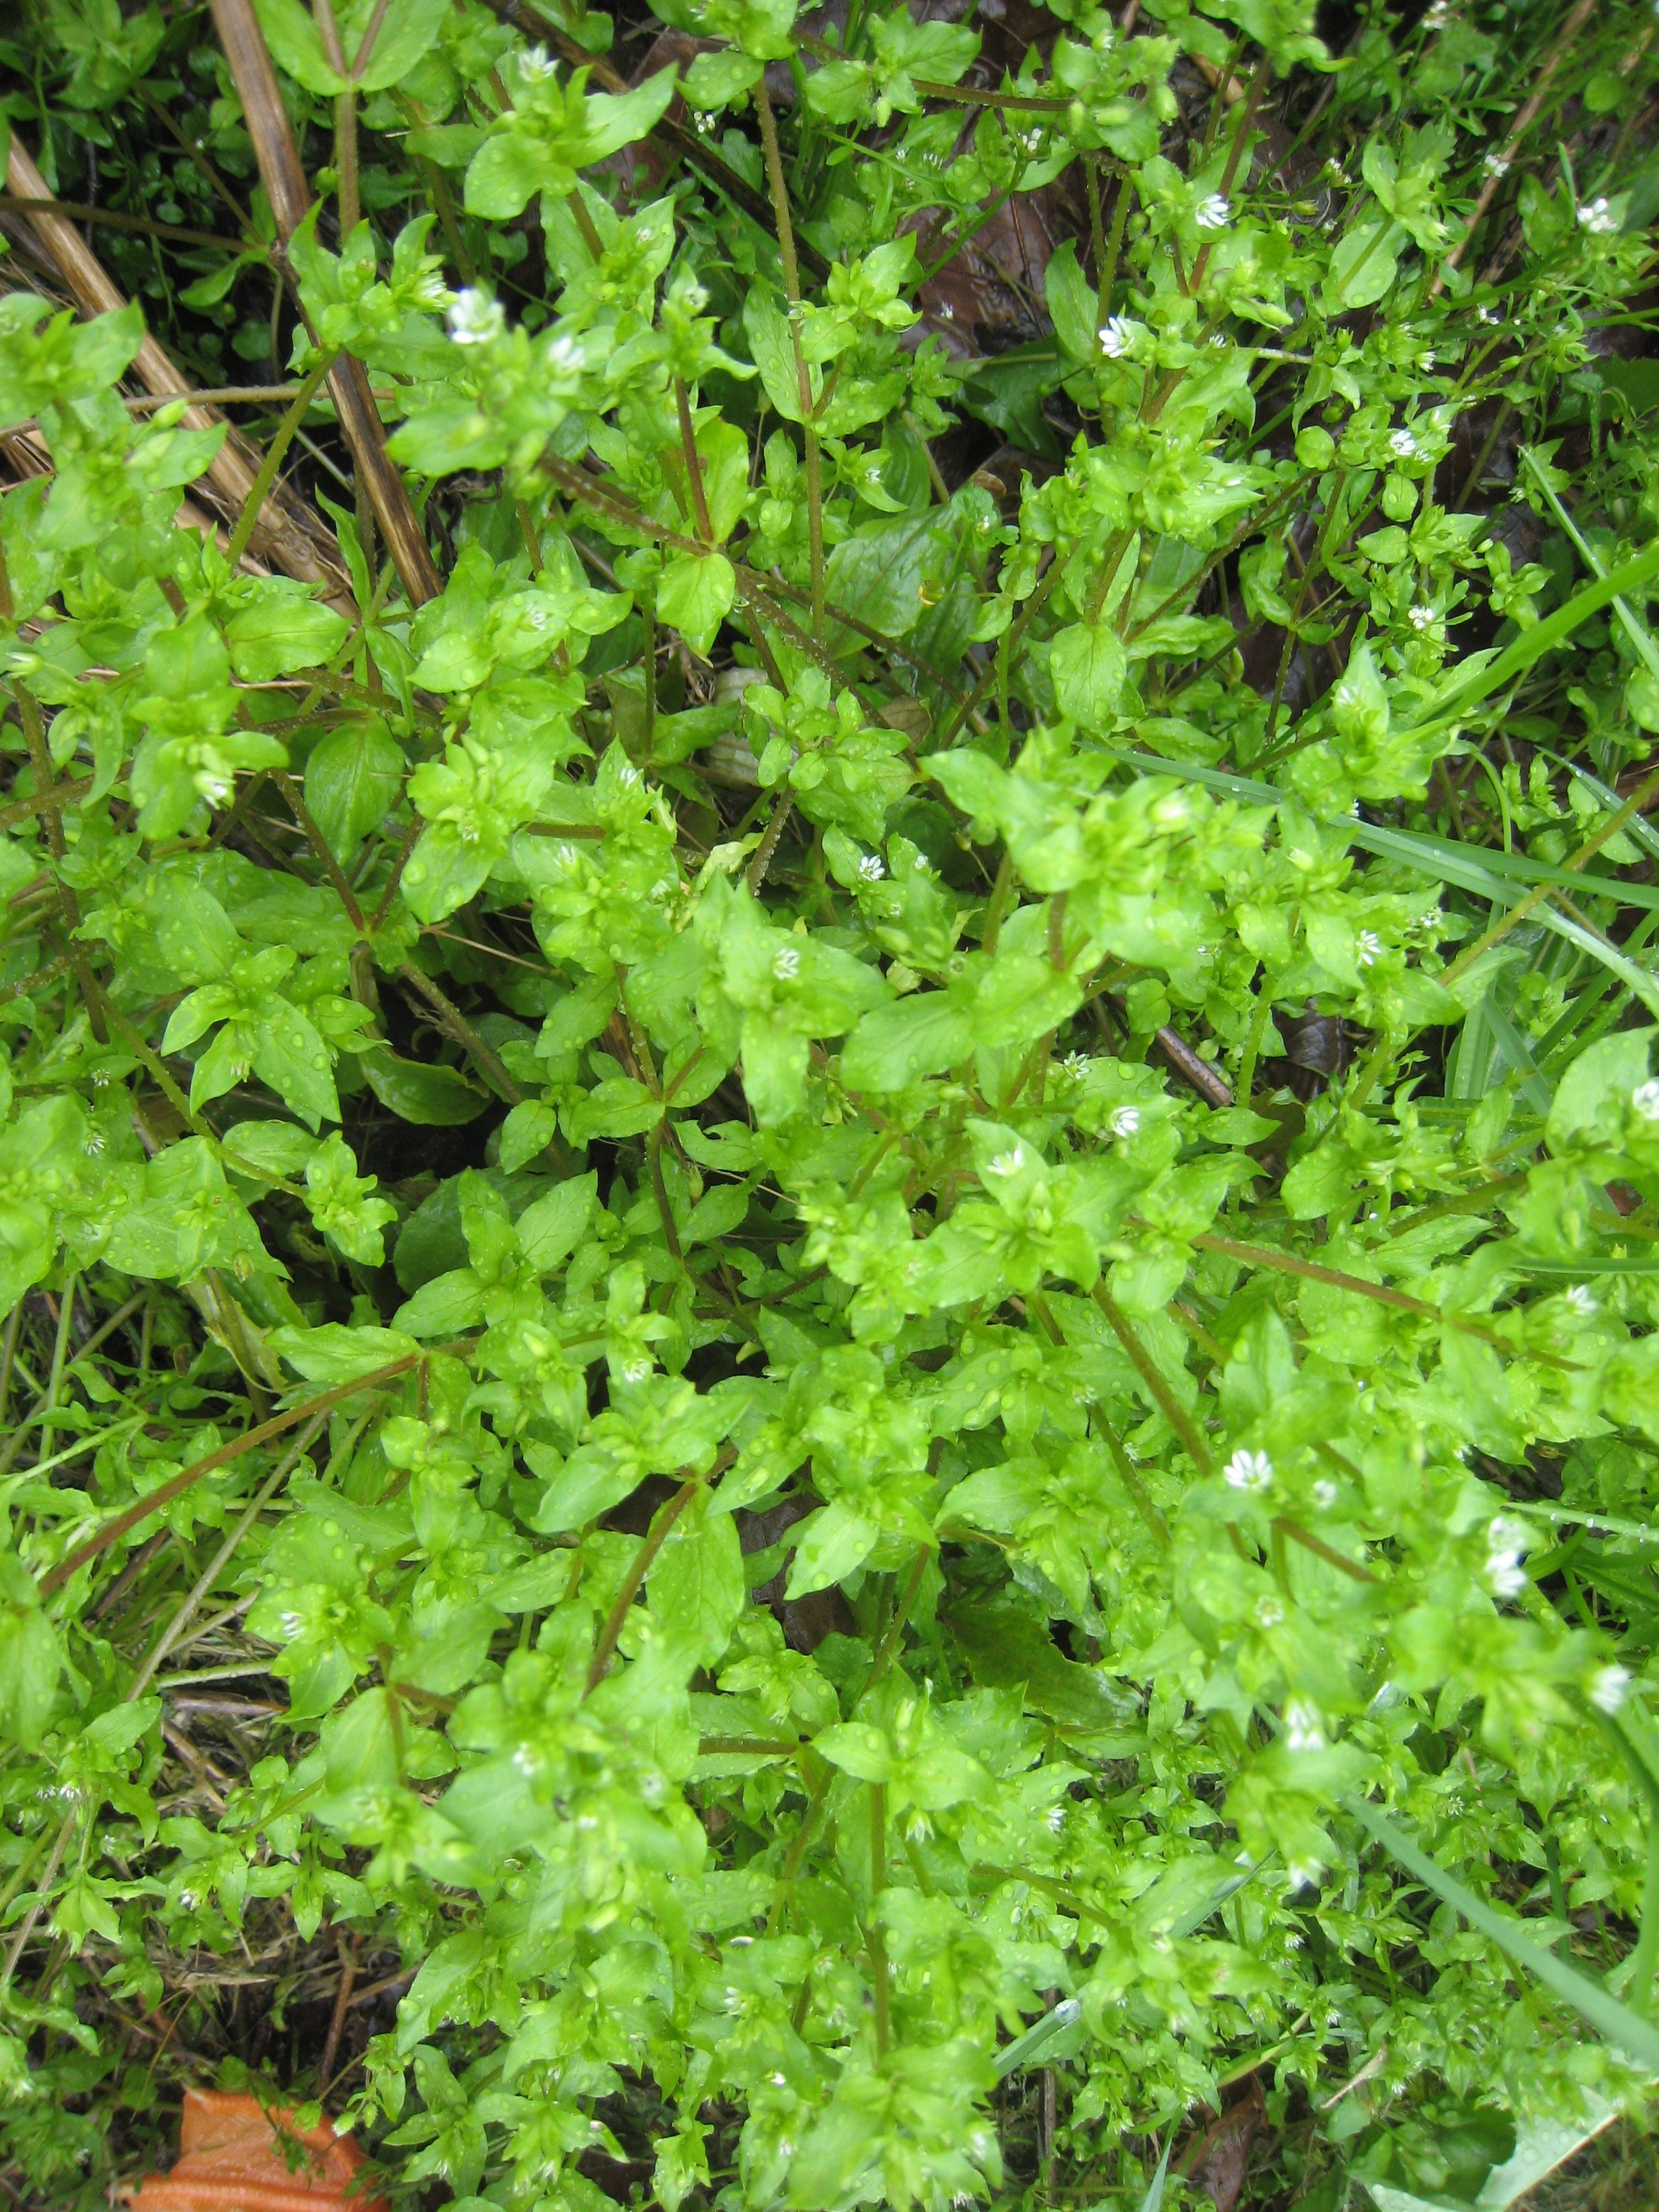 Chickweed photo in the spring when plant is fresh, green and succulent.